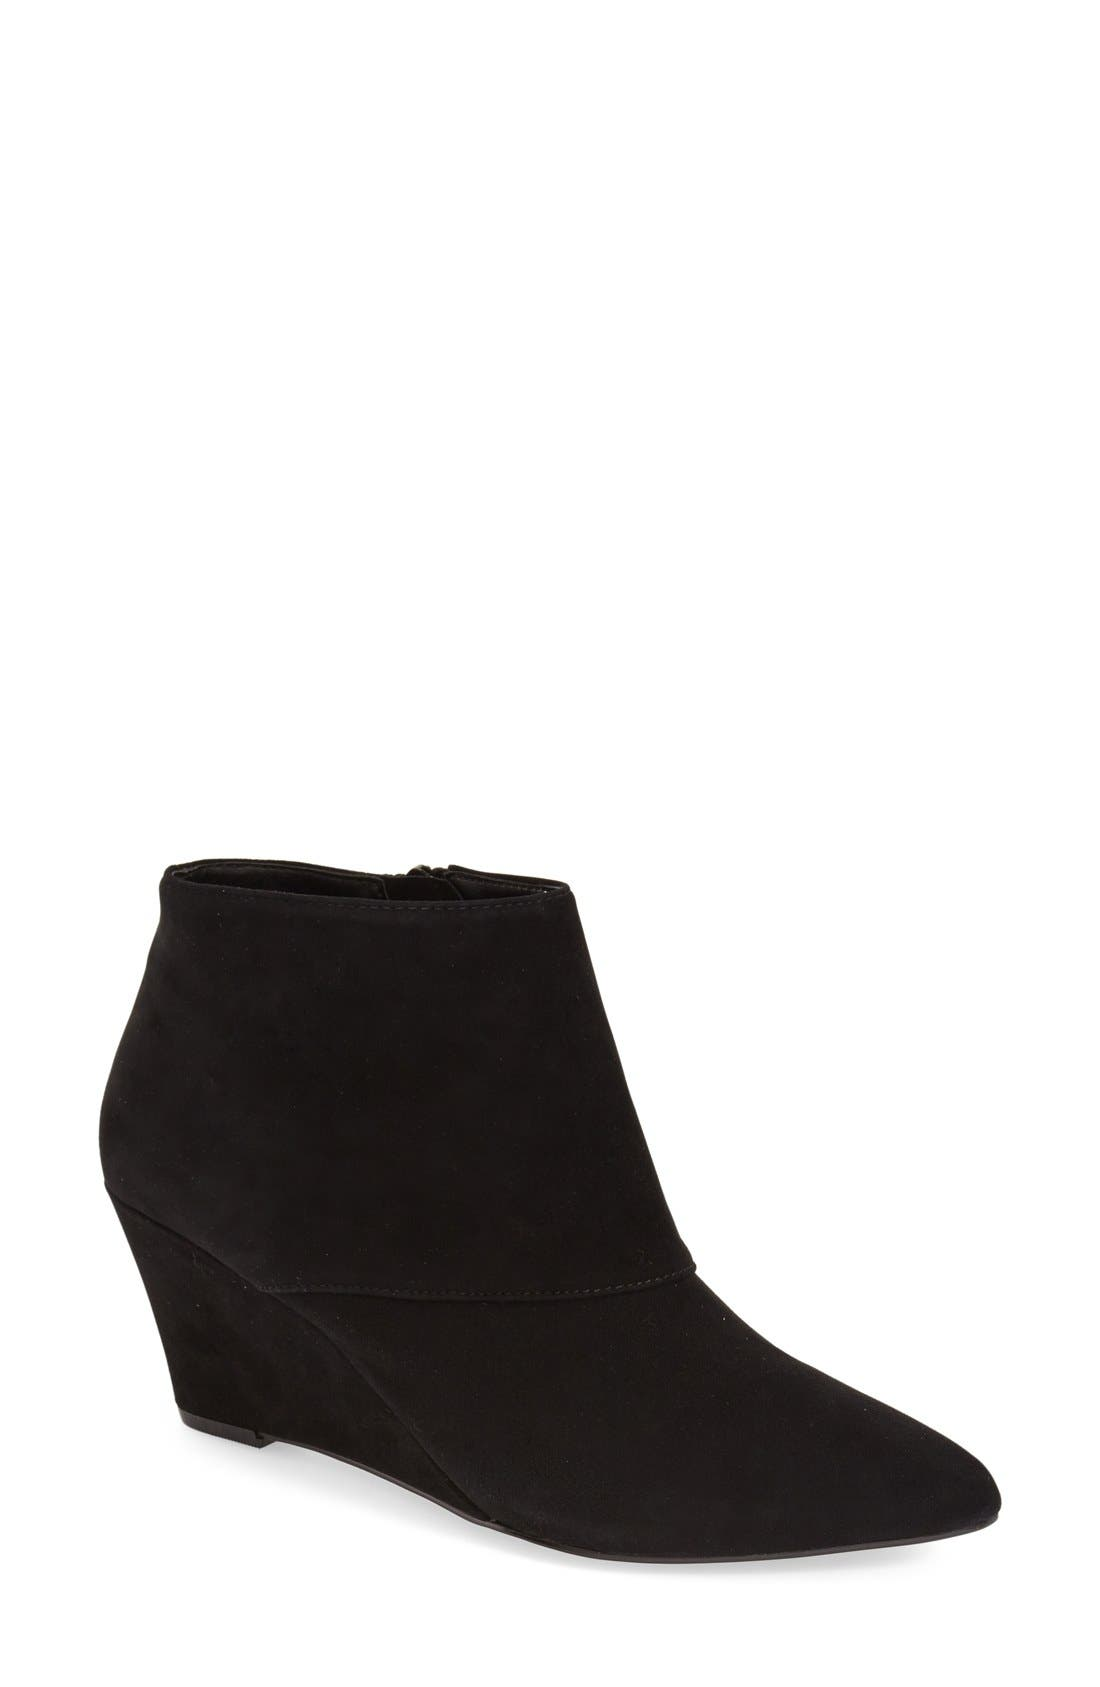 'Galaossi' Pointy Toe Wedge Bootie,                             Main thumbnail 1, color,                             003